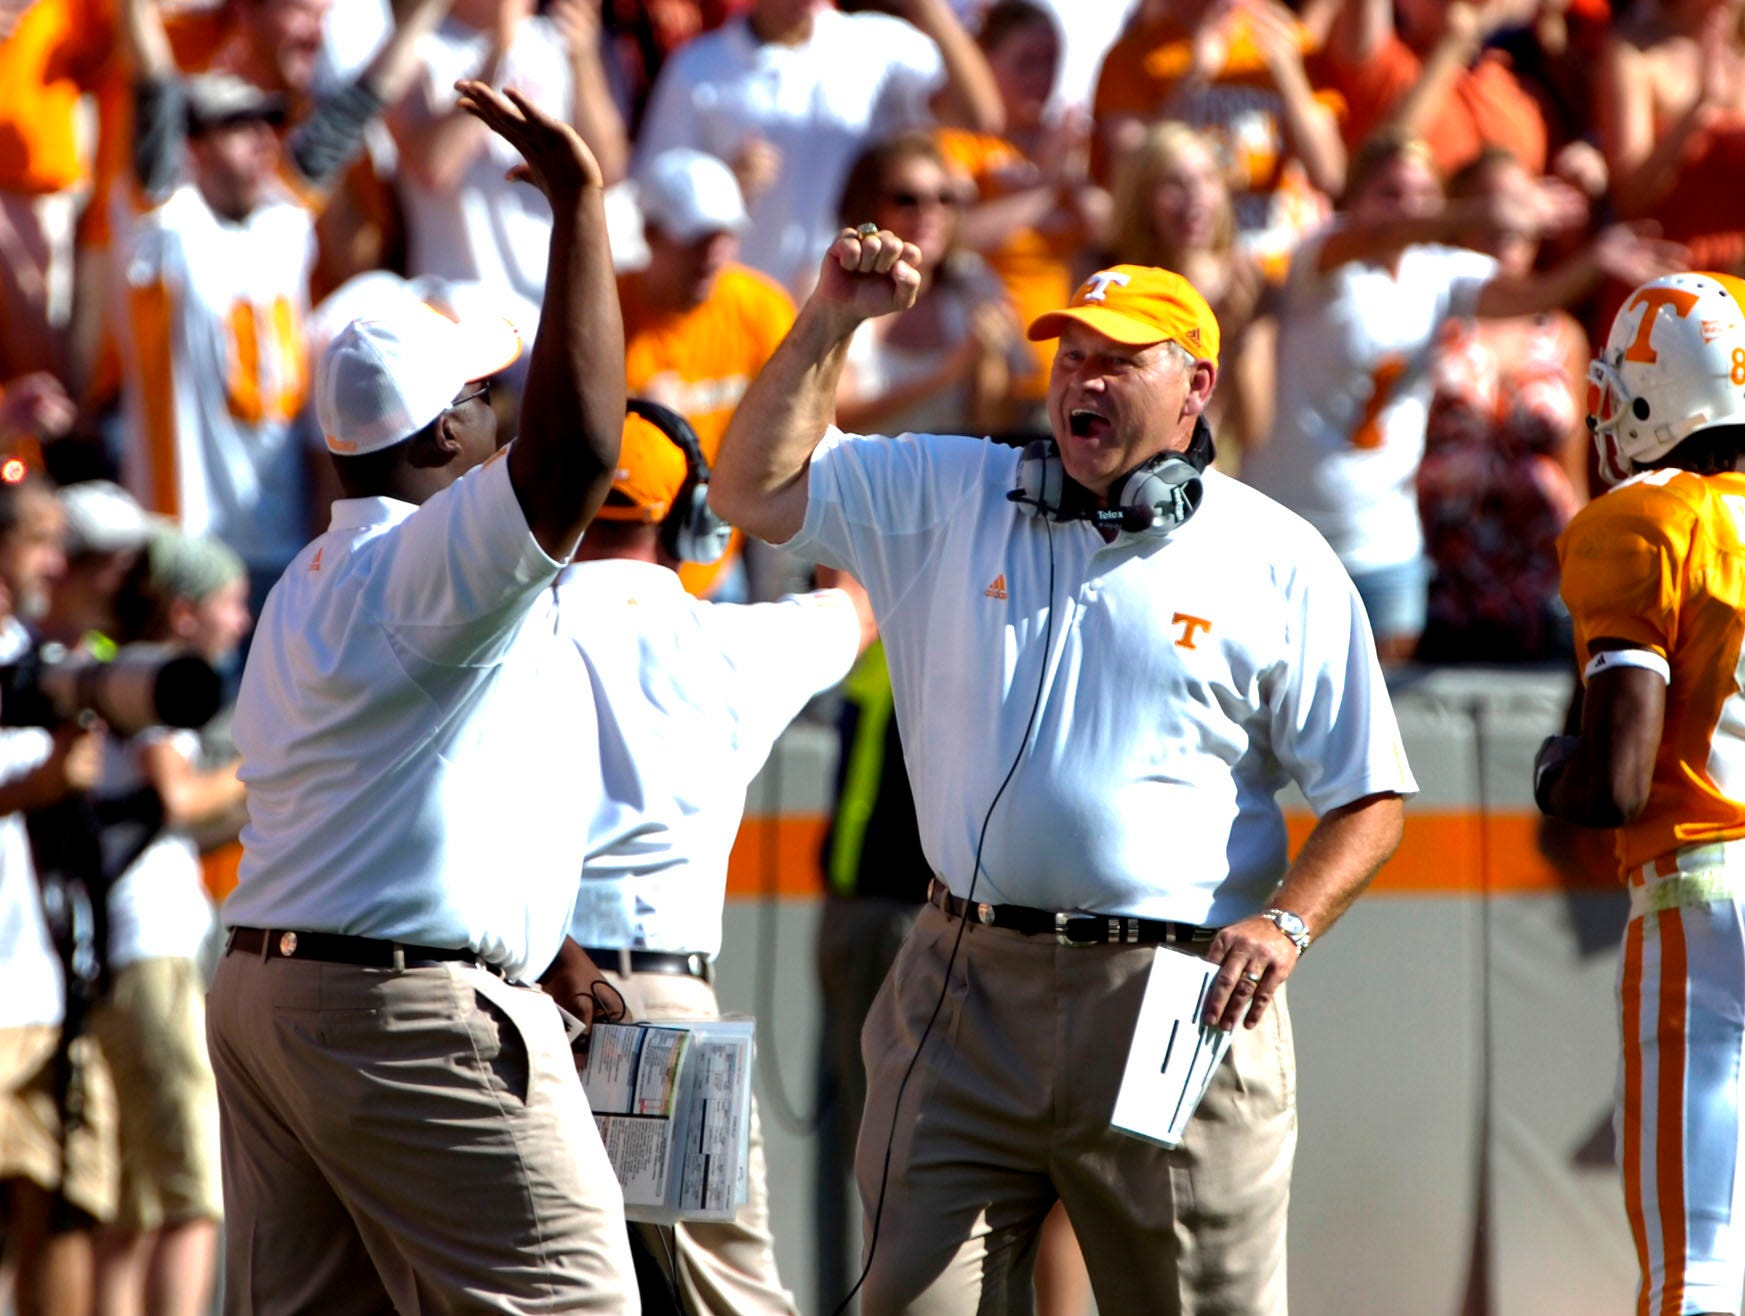 Tennessee head coach Phillip Fulmer, right, celebrates with Gerald Harrison after LaMarcus Coker's 56-yard touchdown catch against Georgia on Saturday at Neyland Stadium. The Vols beat 12th-ranked Georgia 35-14, improving to 3-2 for the season. Harrison is the Vols' director of high school relations.